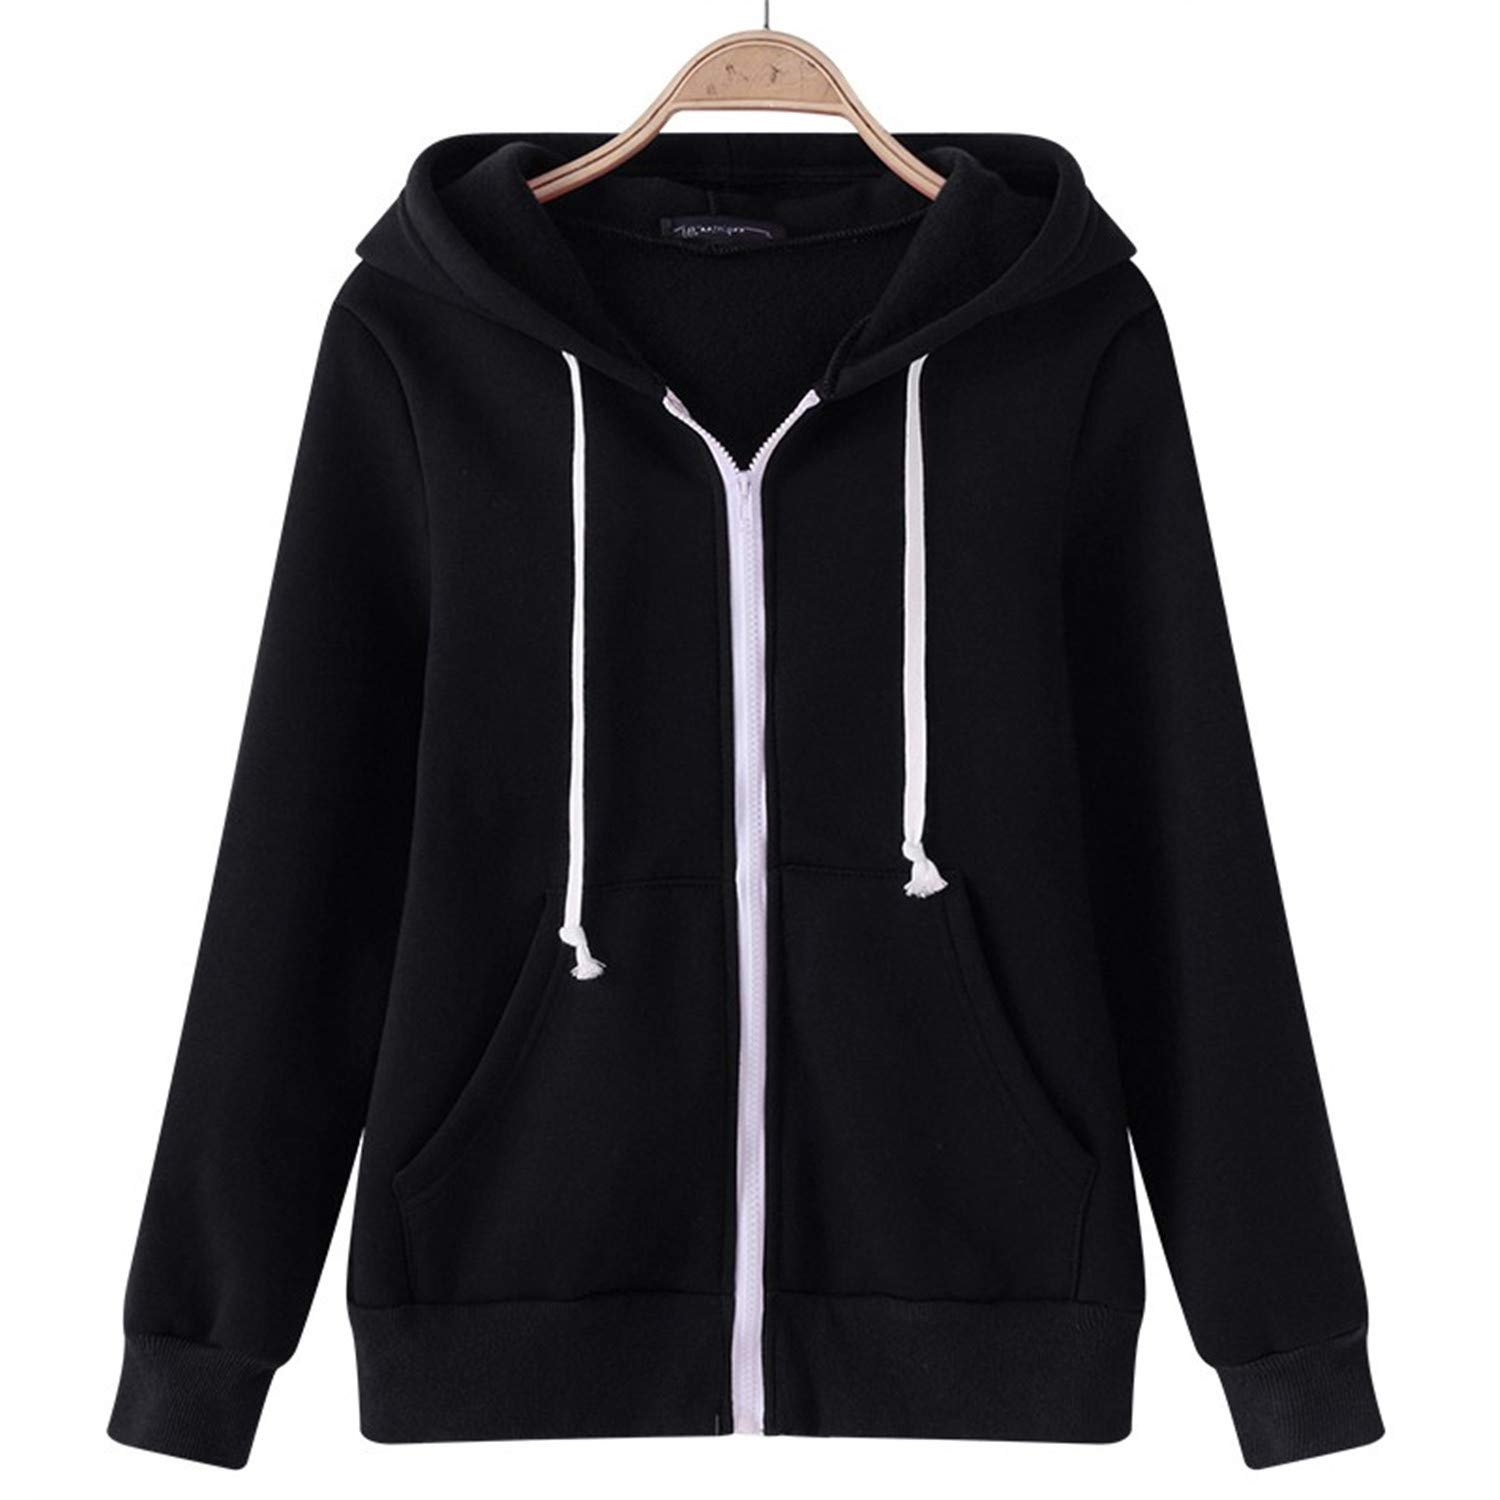 Tiehan Female Hoodies Sweatshirt Autumn Winter Long Sleeve Zipper Hooded Sudaderas Mujer Warm Women Tracksuit Streetwear at Amazon Womens Clothing store: